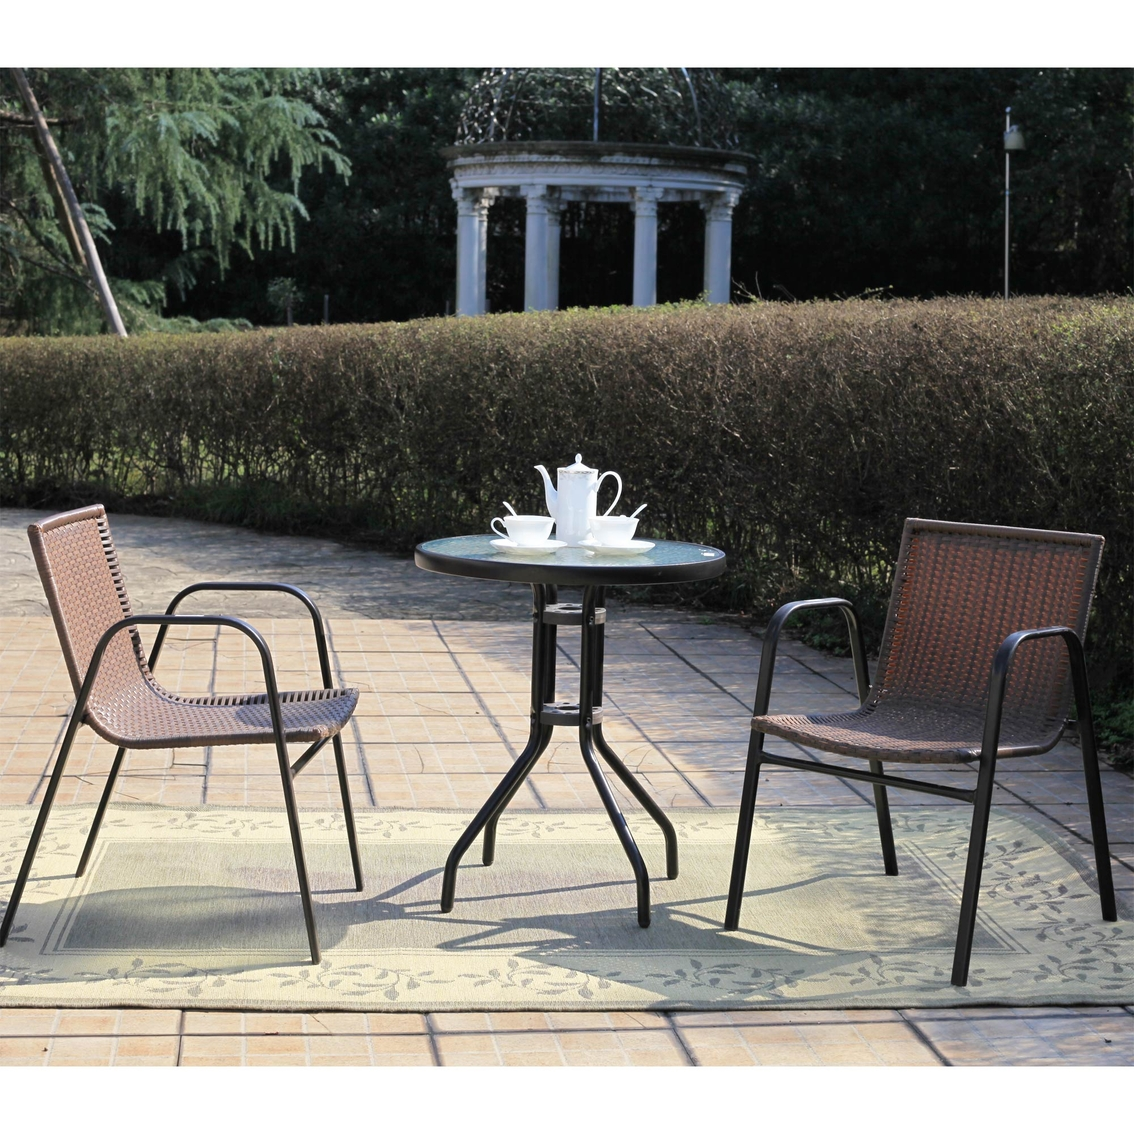 Sunmate Casual St. Tropez 3 Pc. Outdoor Patio Bistro Set